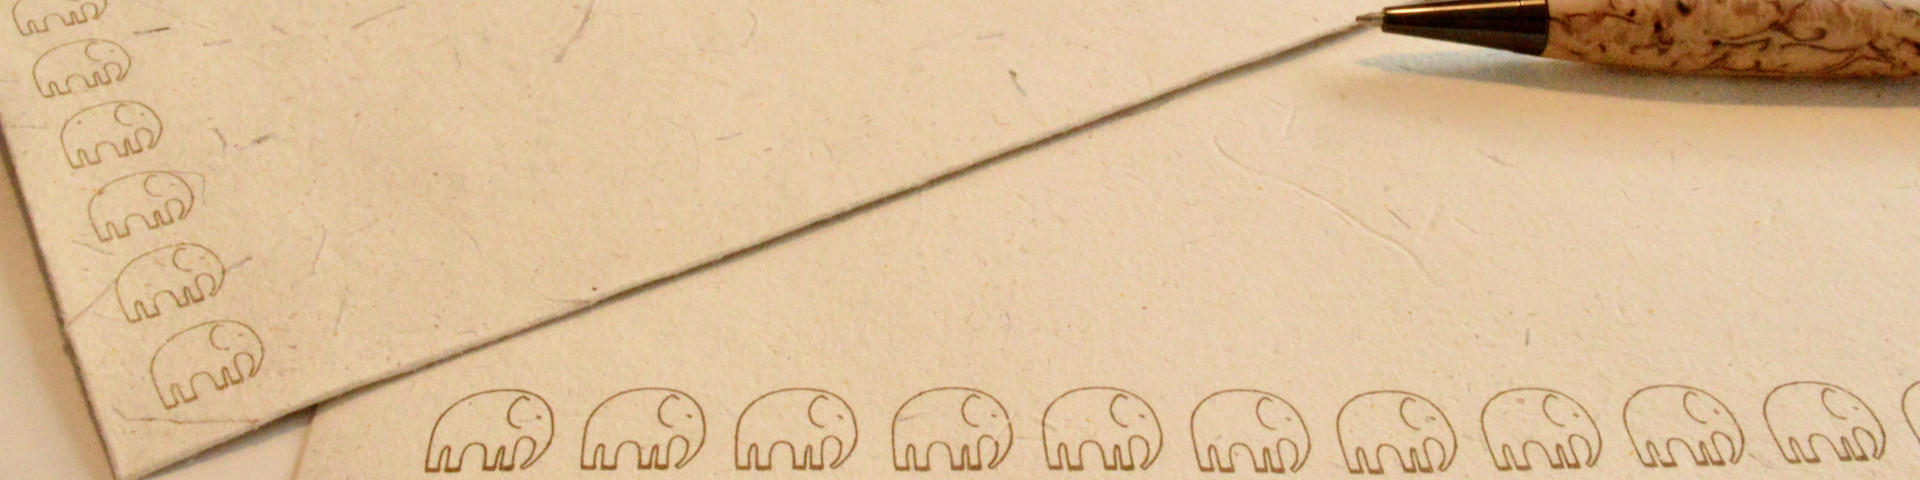 paper products to protect elephants